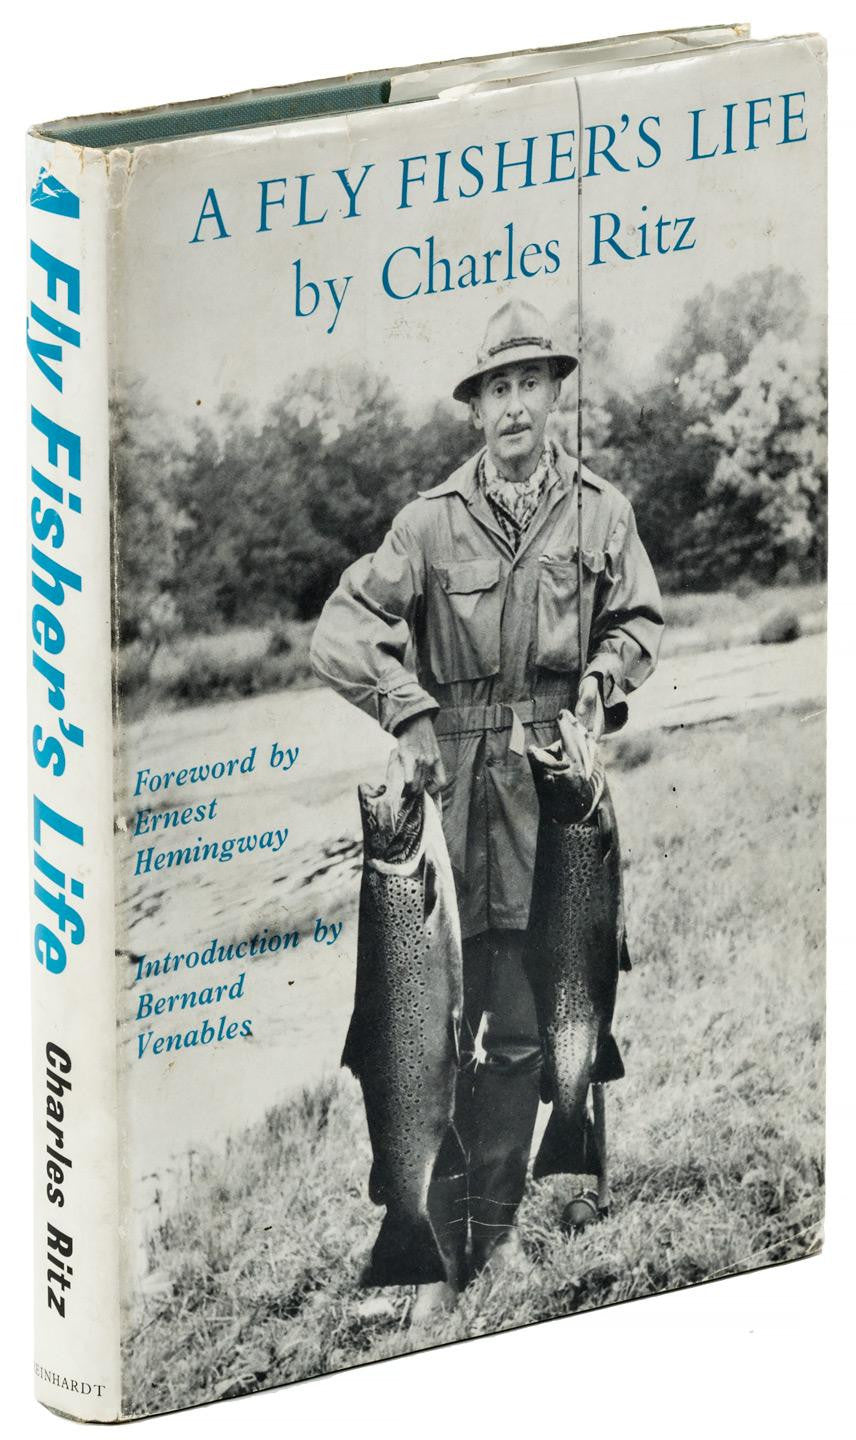 the early life and career of ernest hemingway In a rare recording, ernest hemingway described his work on a play  it's the  story of wild times and unconsummated love set in paris, and.